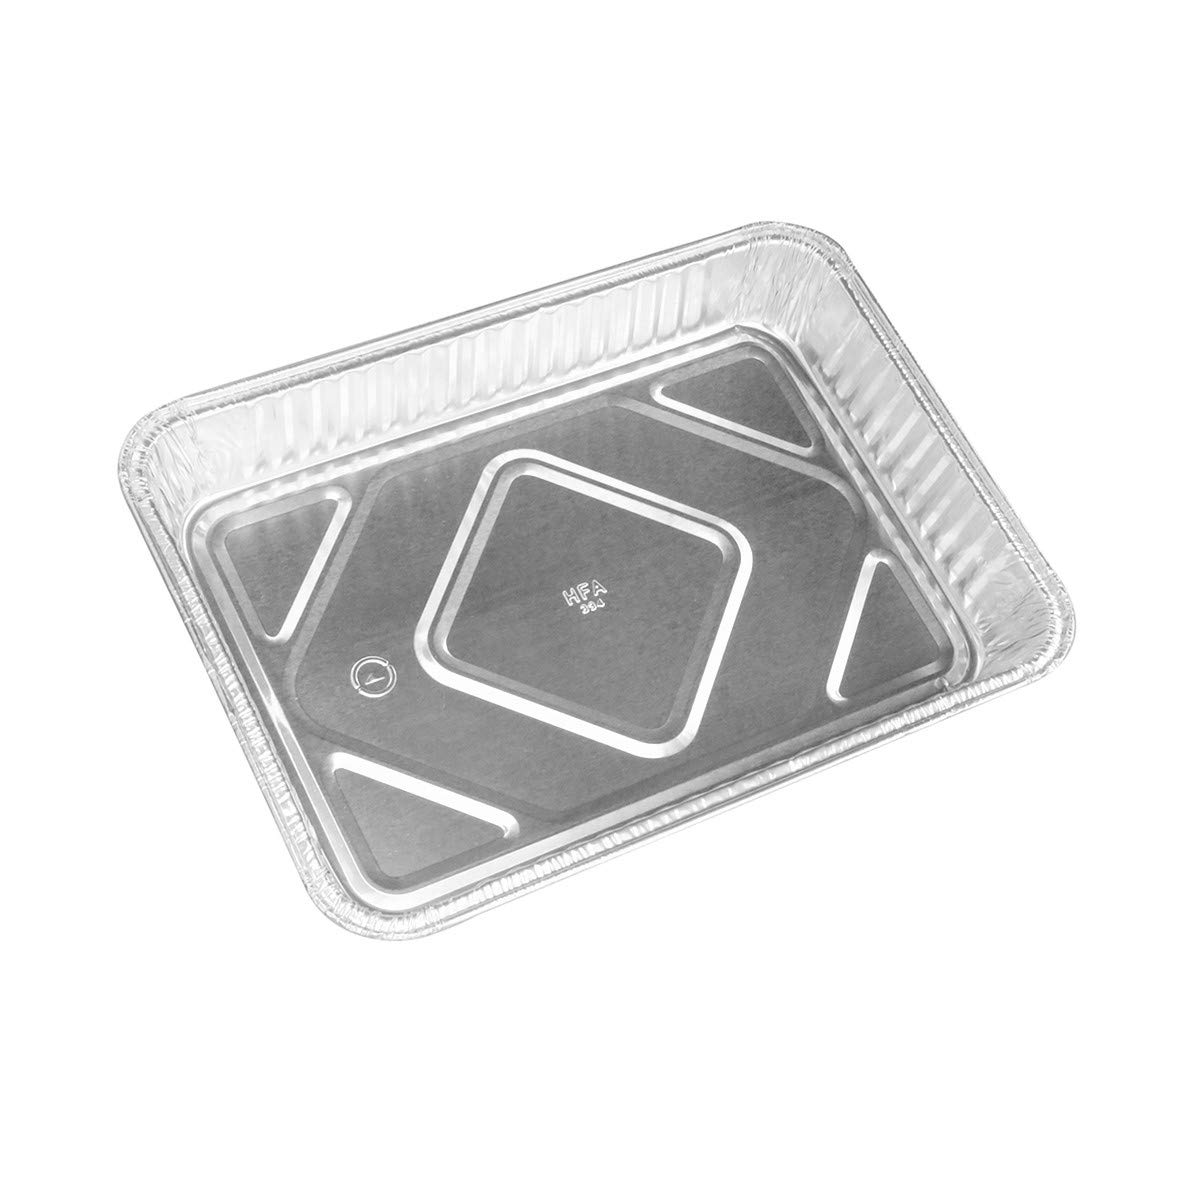 KitchenDance Disposable Aluminum 13 x 9 x 2 Cake pans with Lids- Pack of 12 pans & 12 Lids by KitchenDance (Image #1)